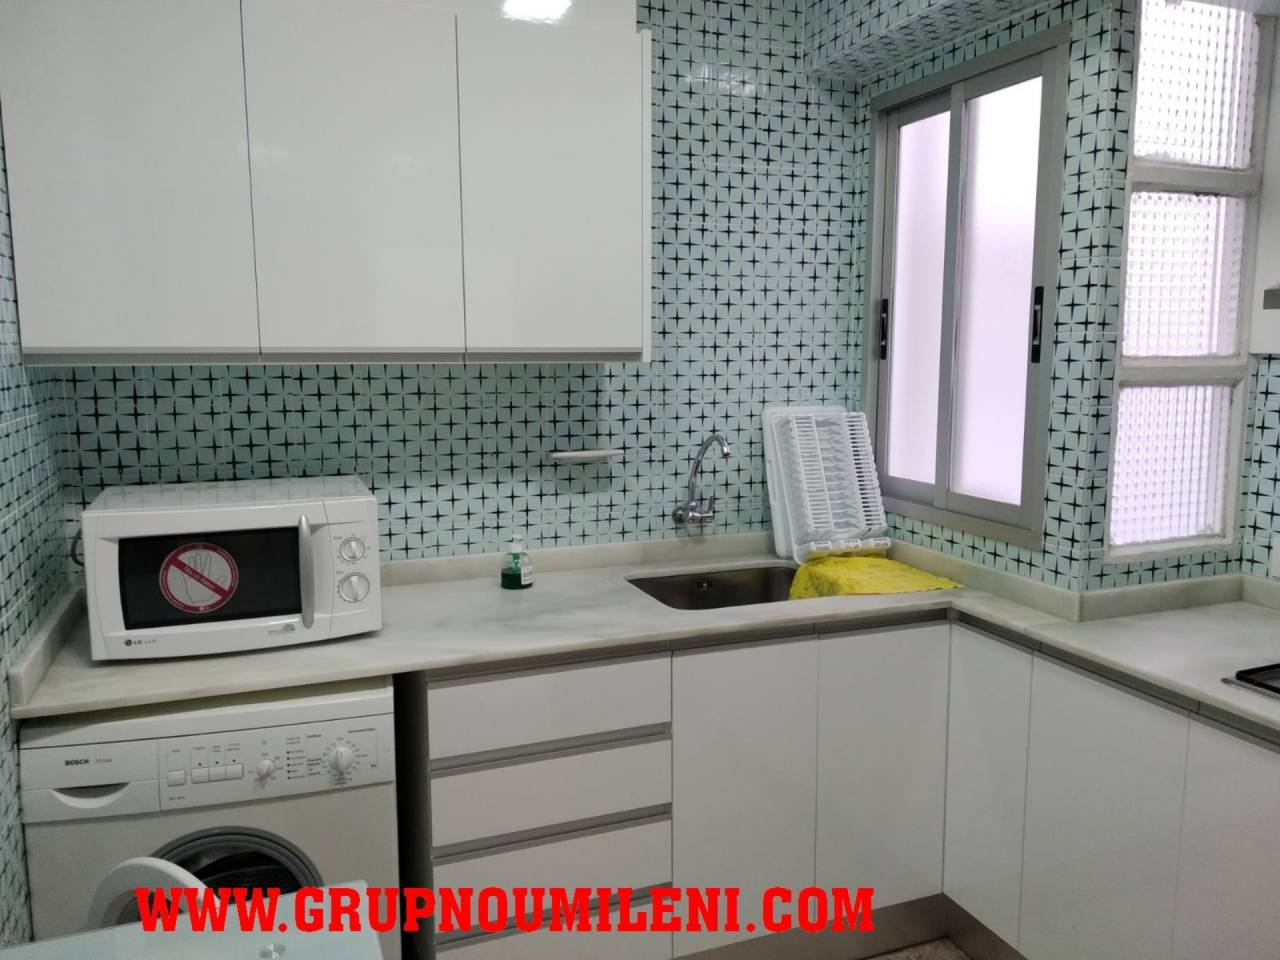 Location Appartement  El perelló. Altura piso 1º, apartamento superficie total 85 m², superficie ú